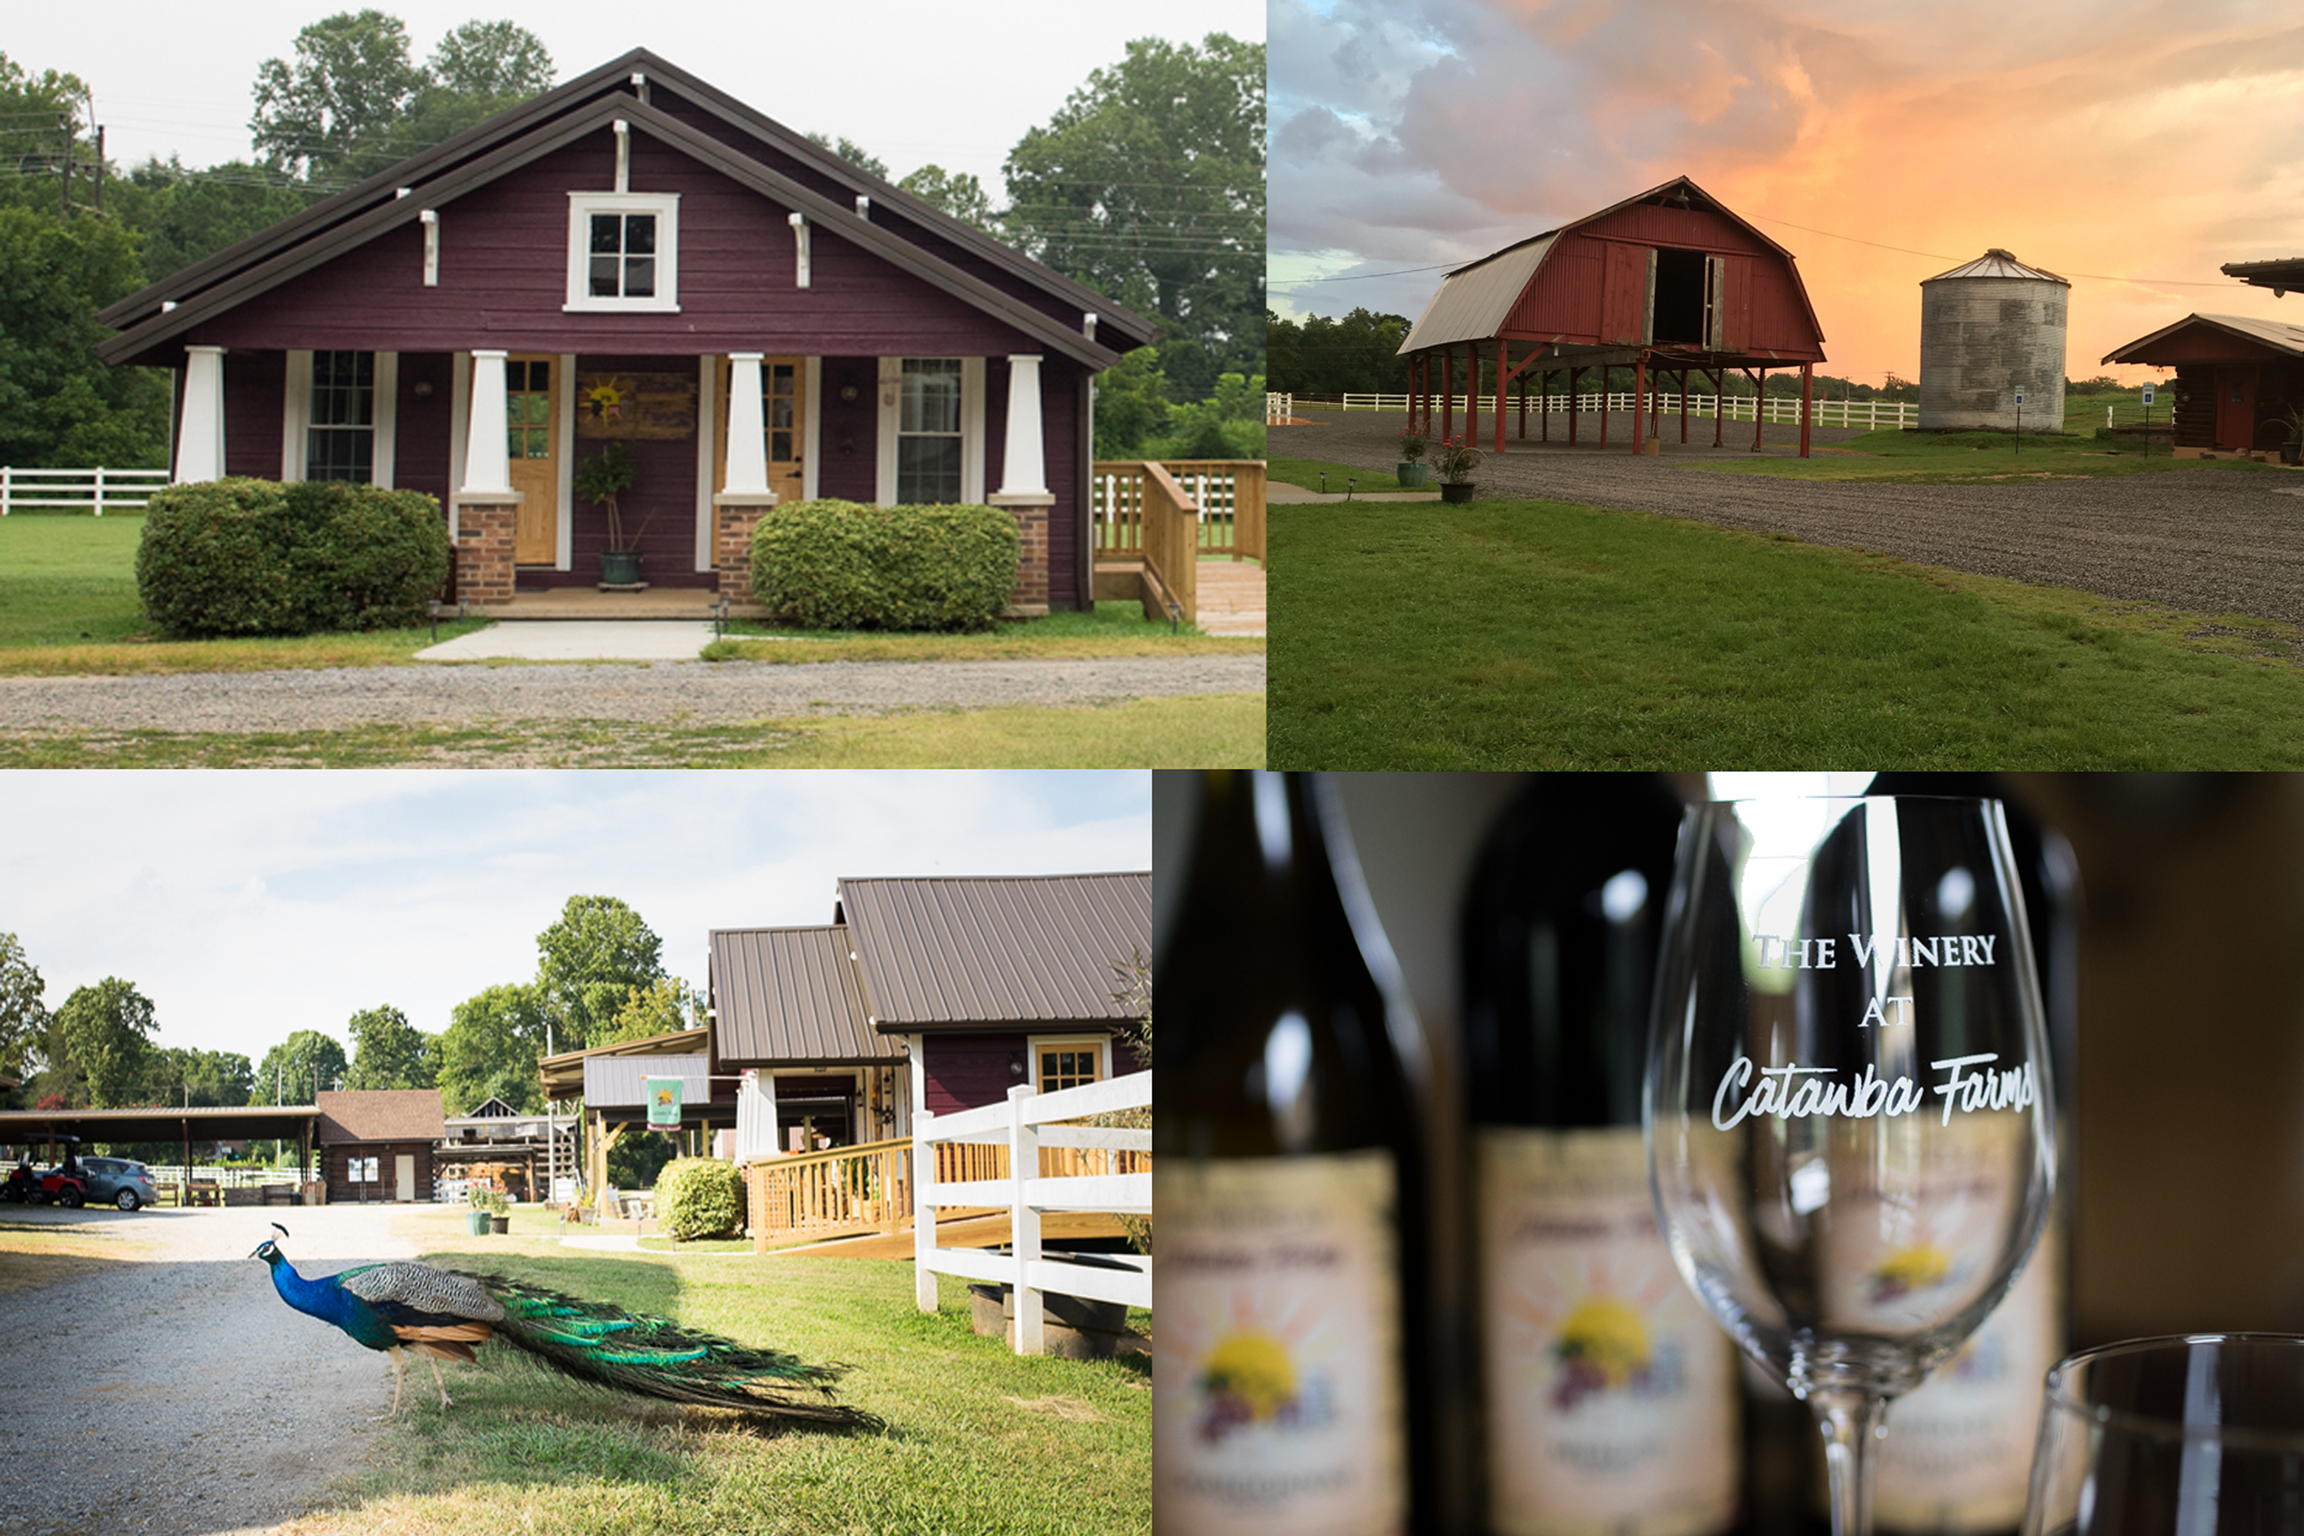 Vineyard & Winery Image Collage